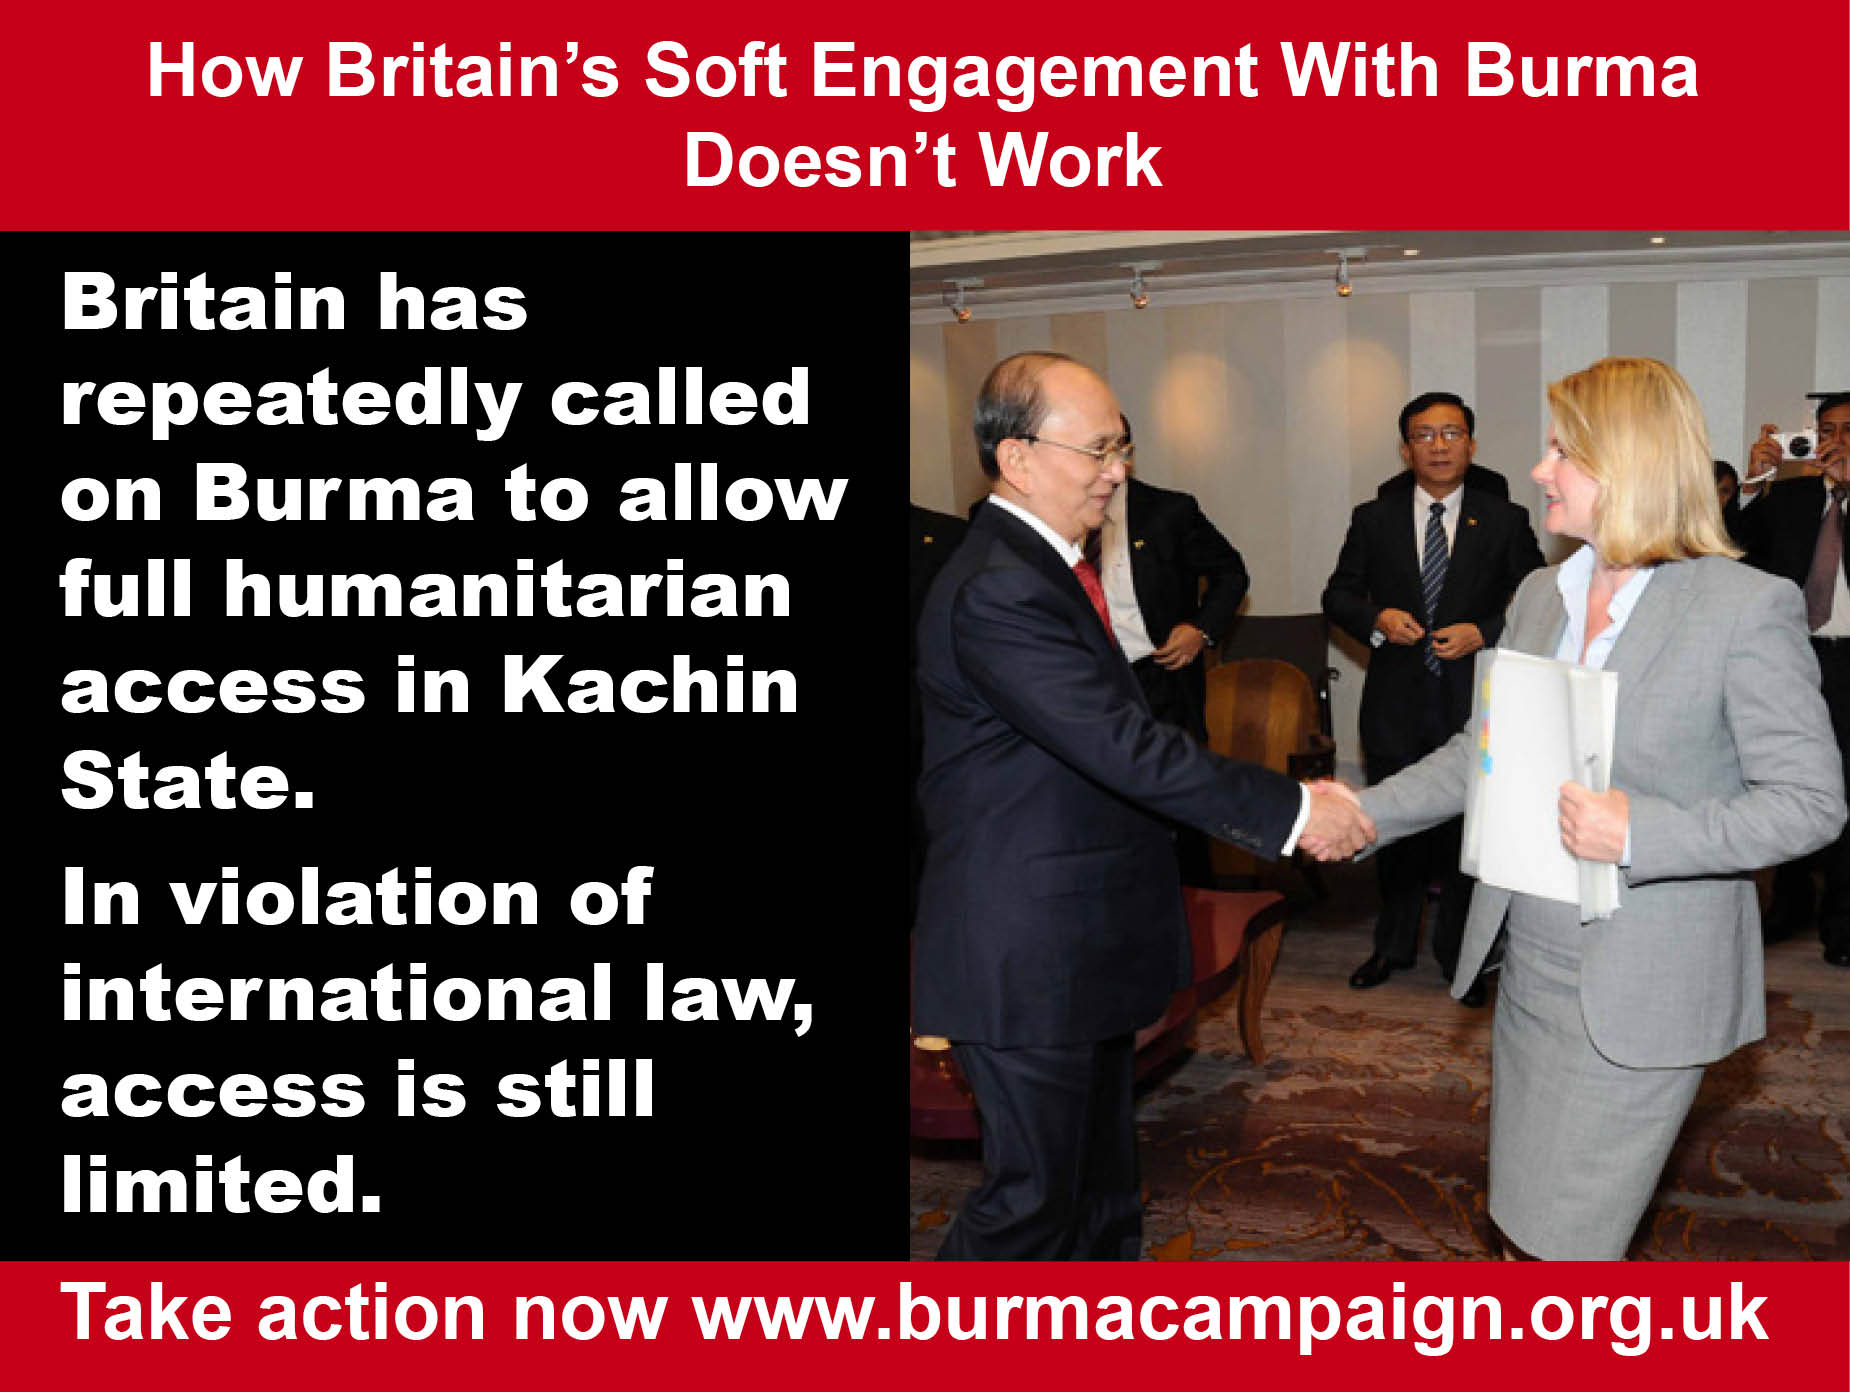 soft engagement doesn't work kachin aid burma campaign UK